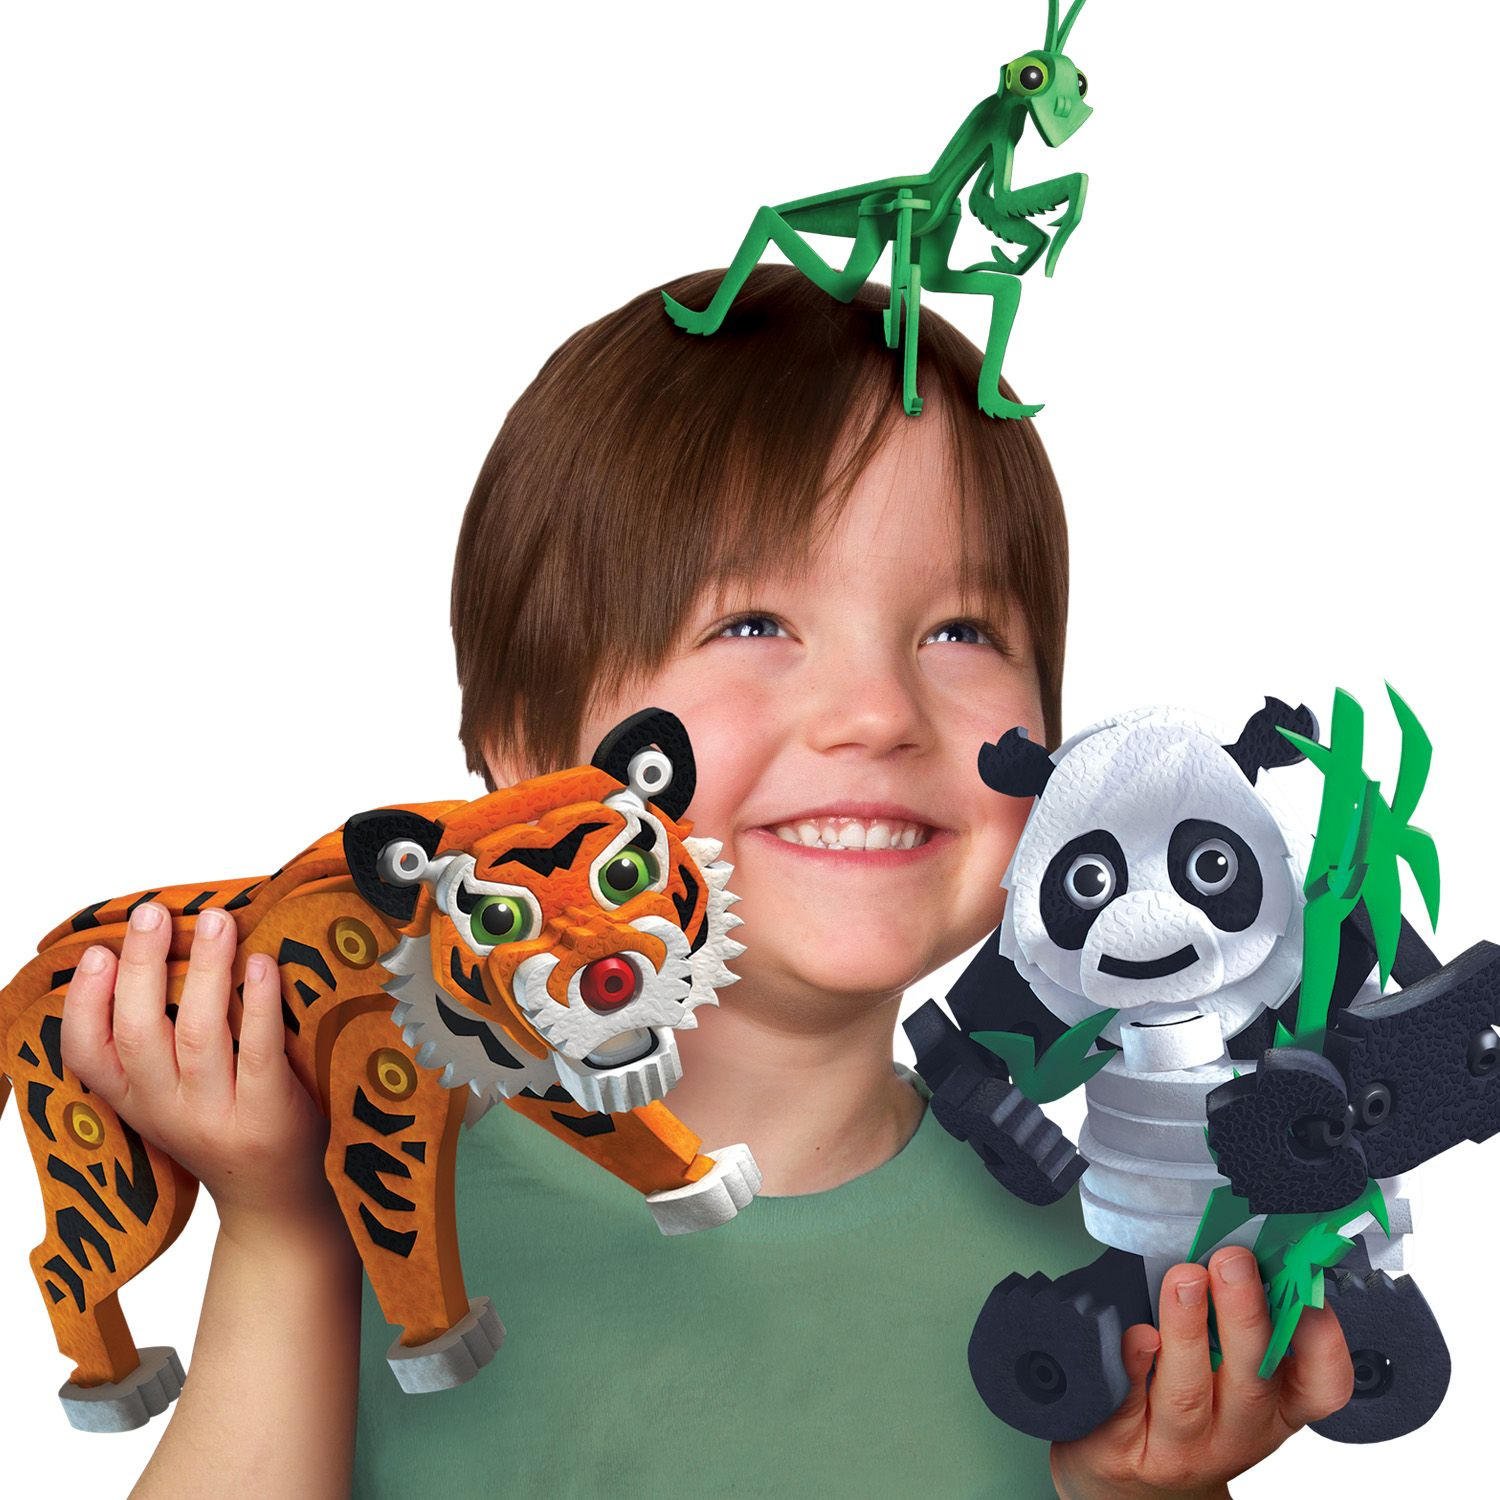 Bloco Construction Toys Tiger and Panda Toys line